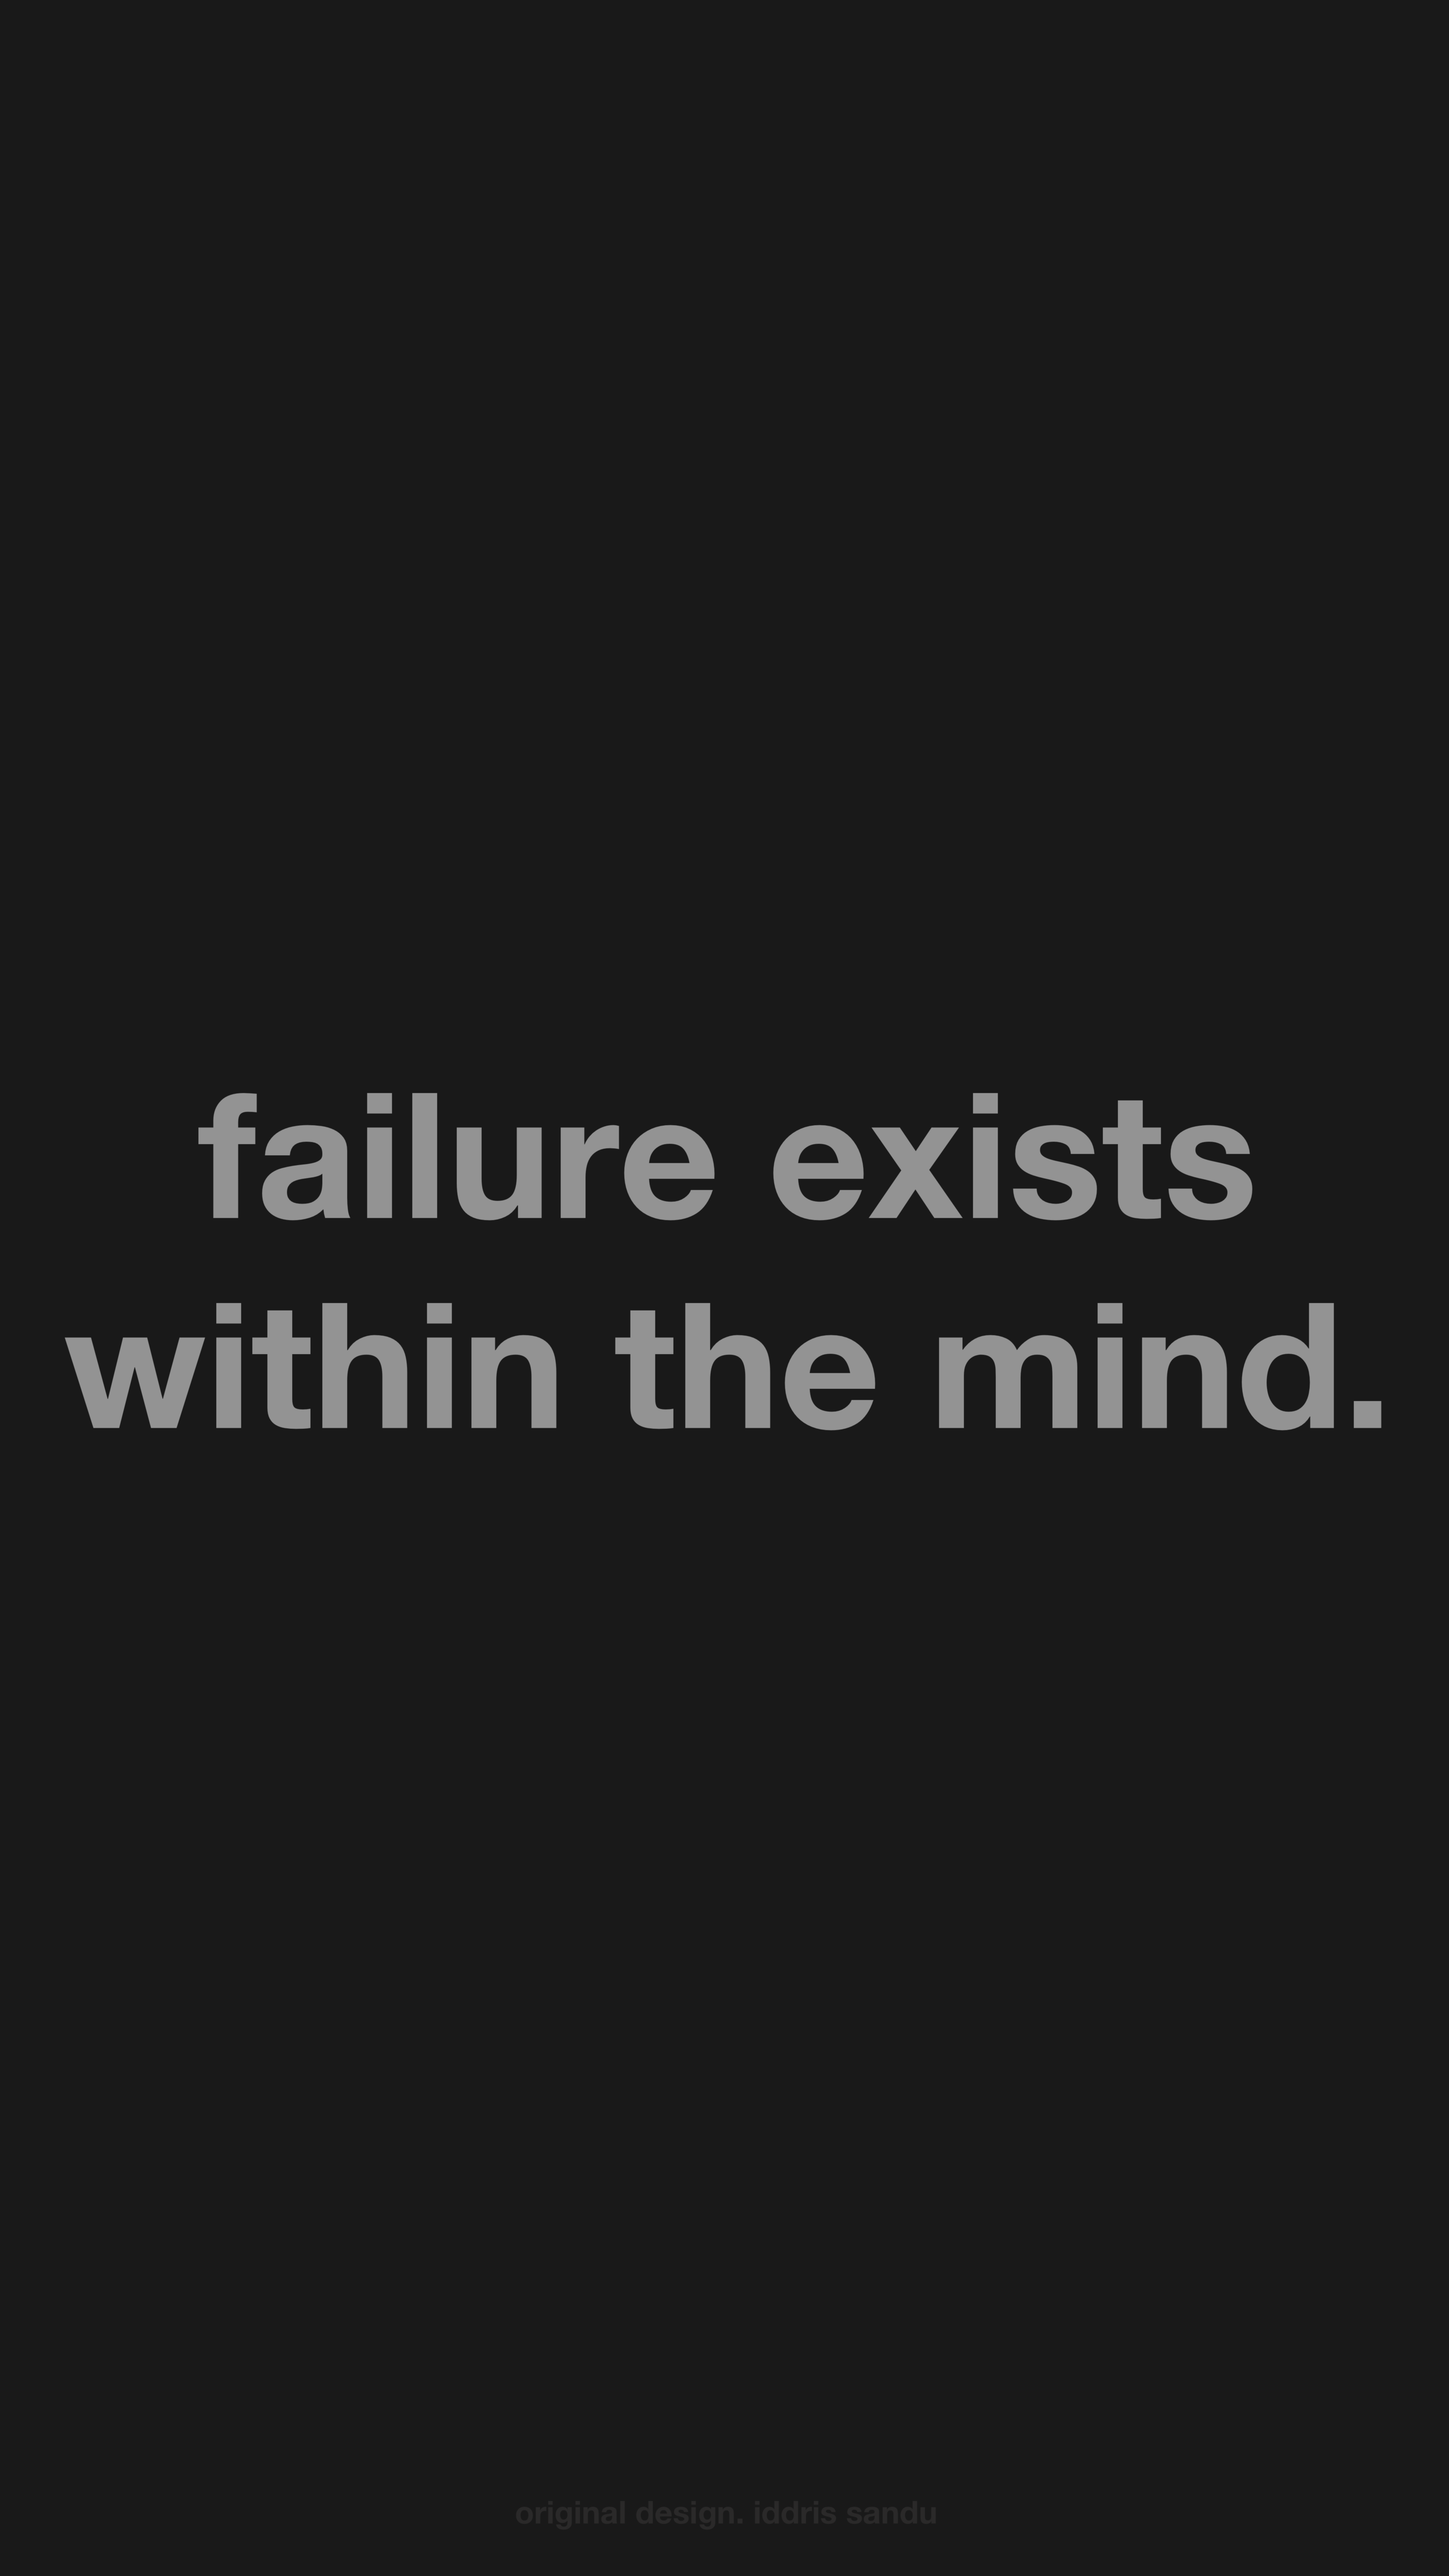 failure exists within the mind (mobile).png